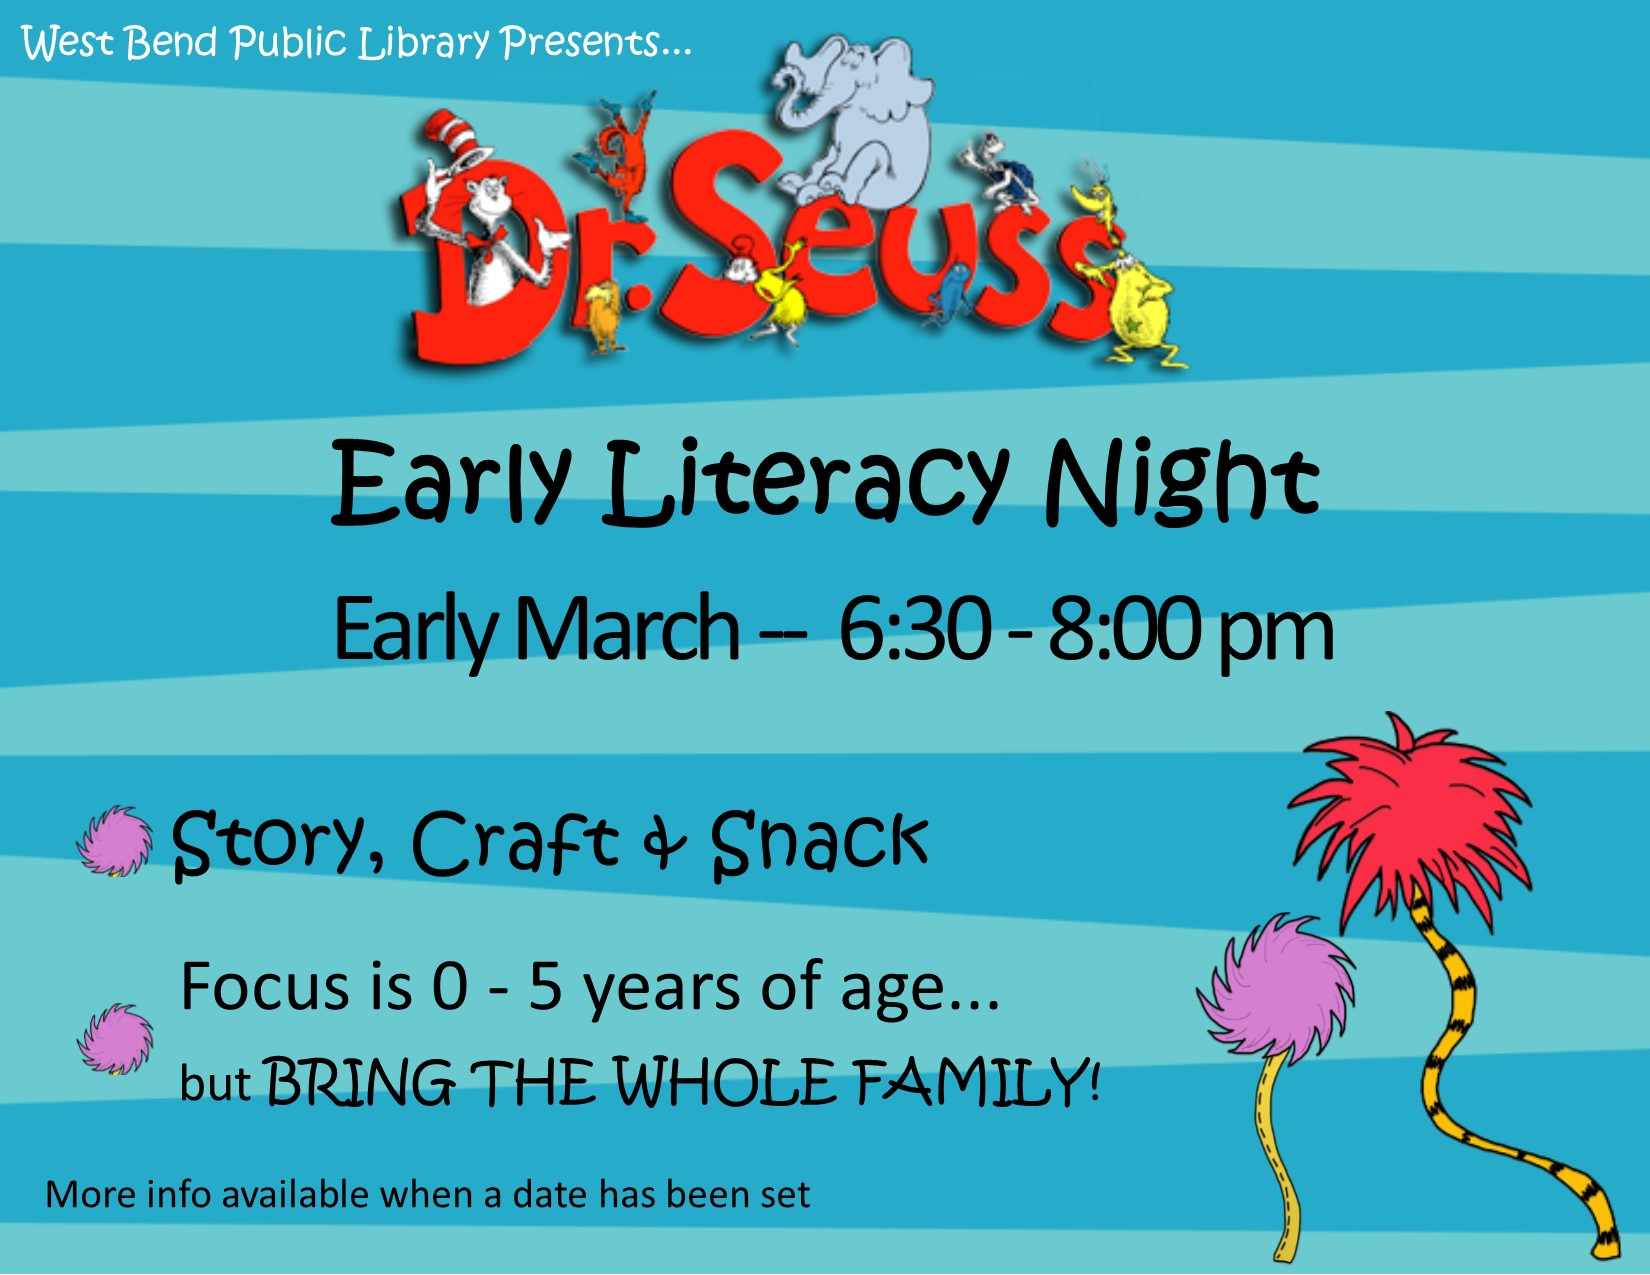 EarlyLiteracyNight_Seuss.jpg